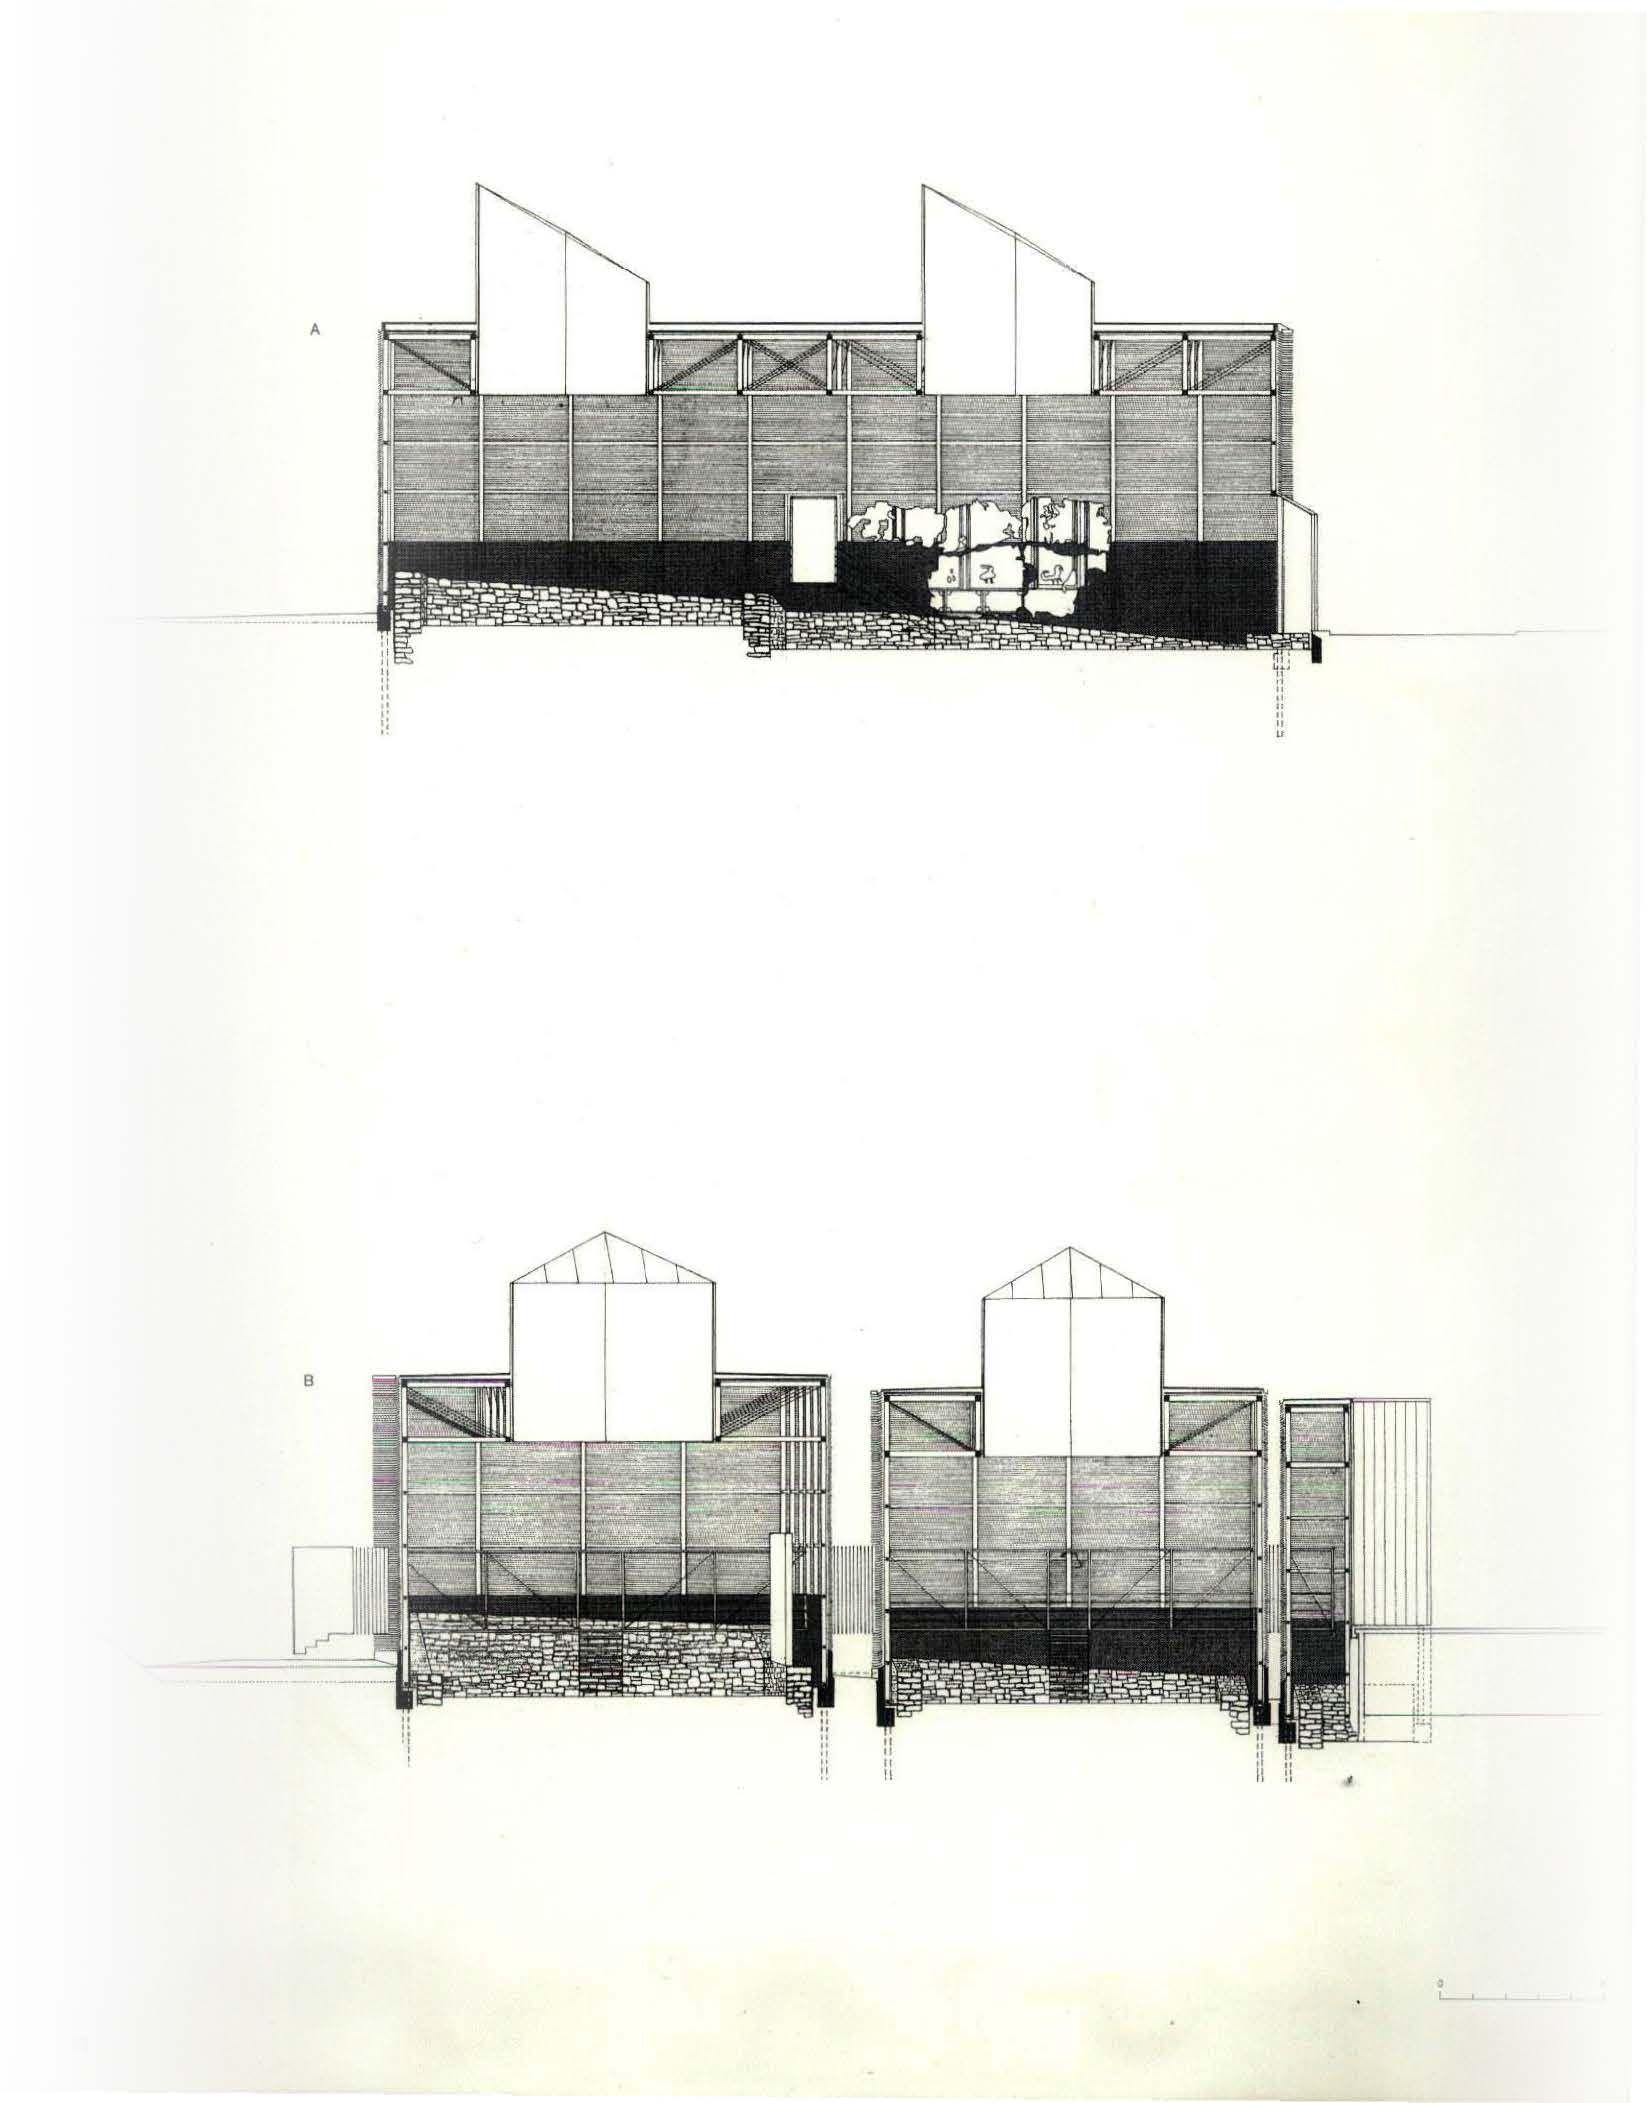 1986 Shelters for Roman archaeological site, Chur